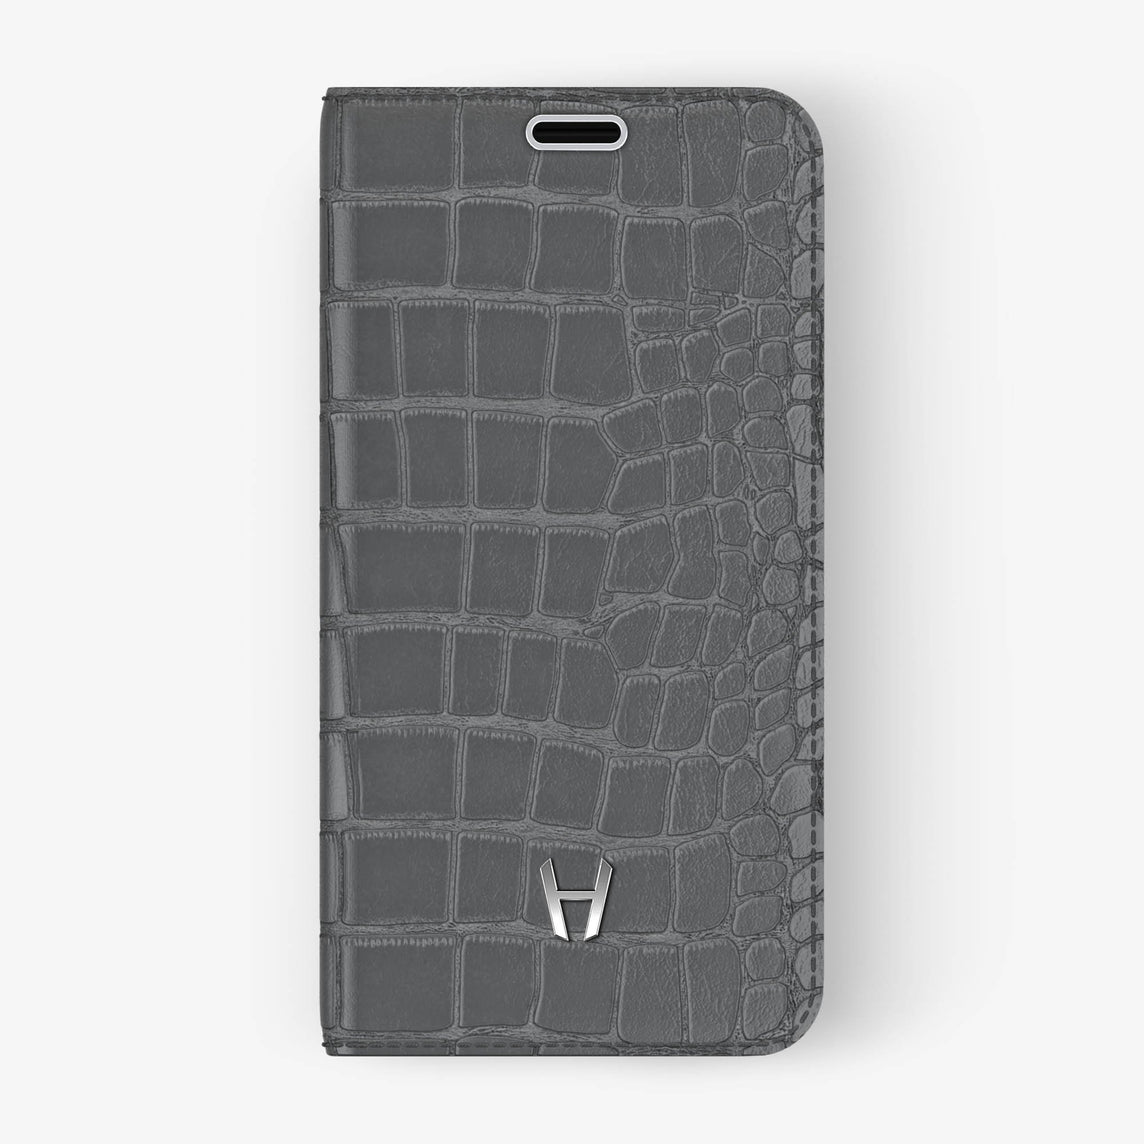 Alligator Folio Case iPhone X/Xs | Grey - Stainless Steel without-personalization